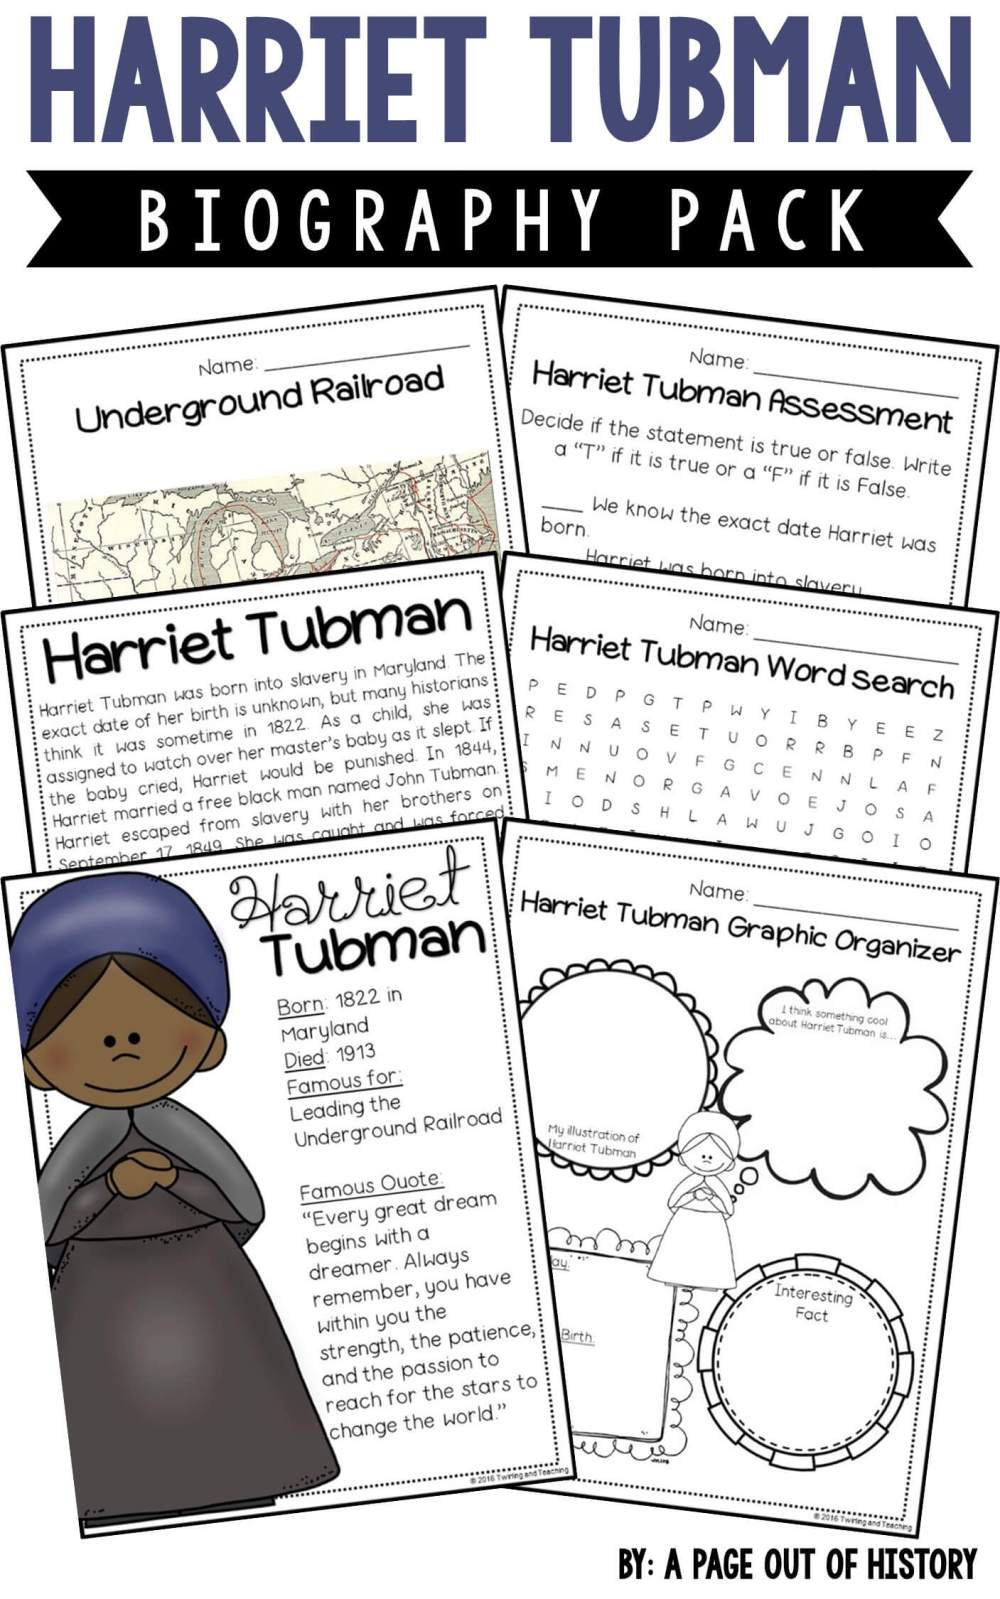 medium resolution of Harriet Tubman Biography Pack (Black History Month) - A Page Out of History